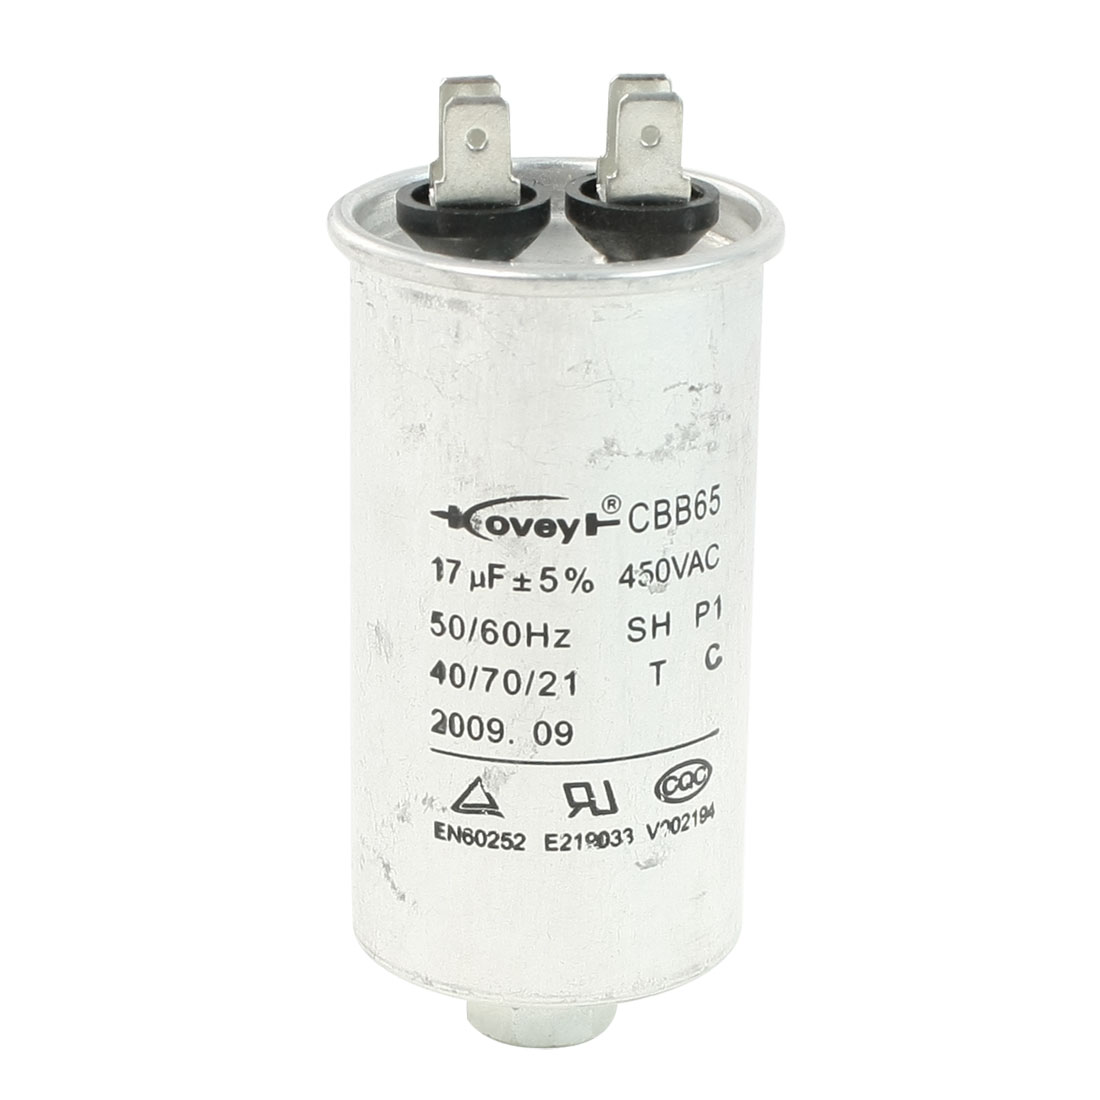 Air Conditioner AC 450V 17uF Cylindrical Motor Capacitor CBB65